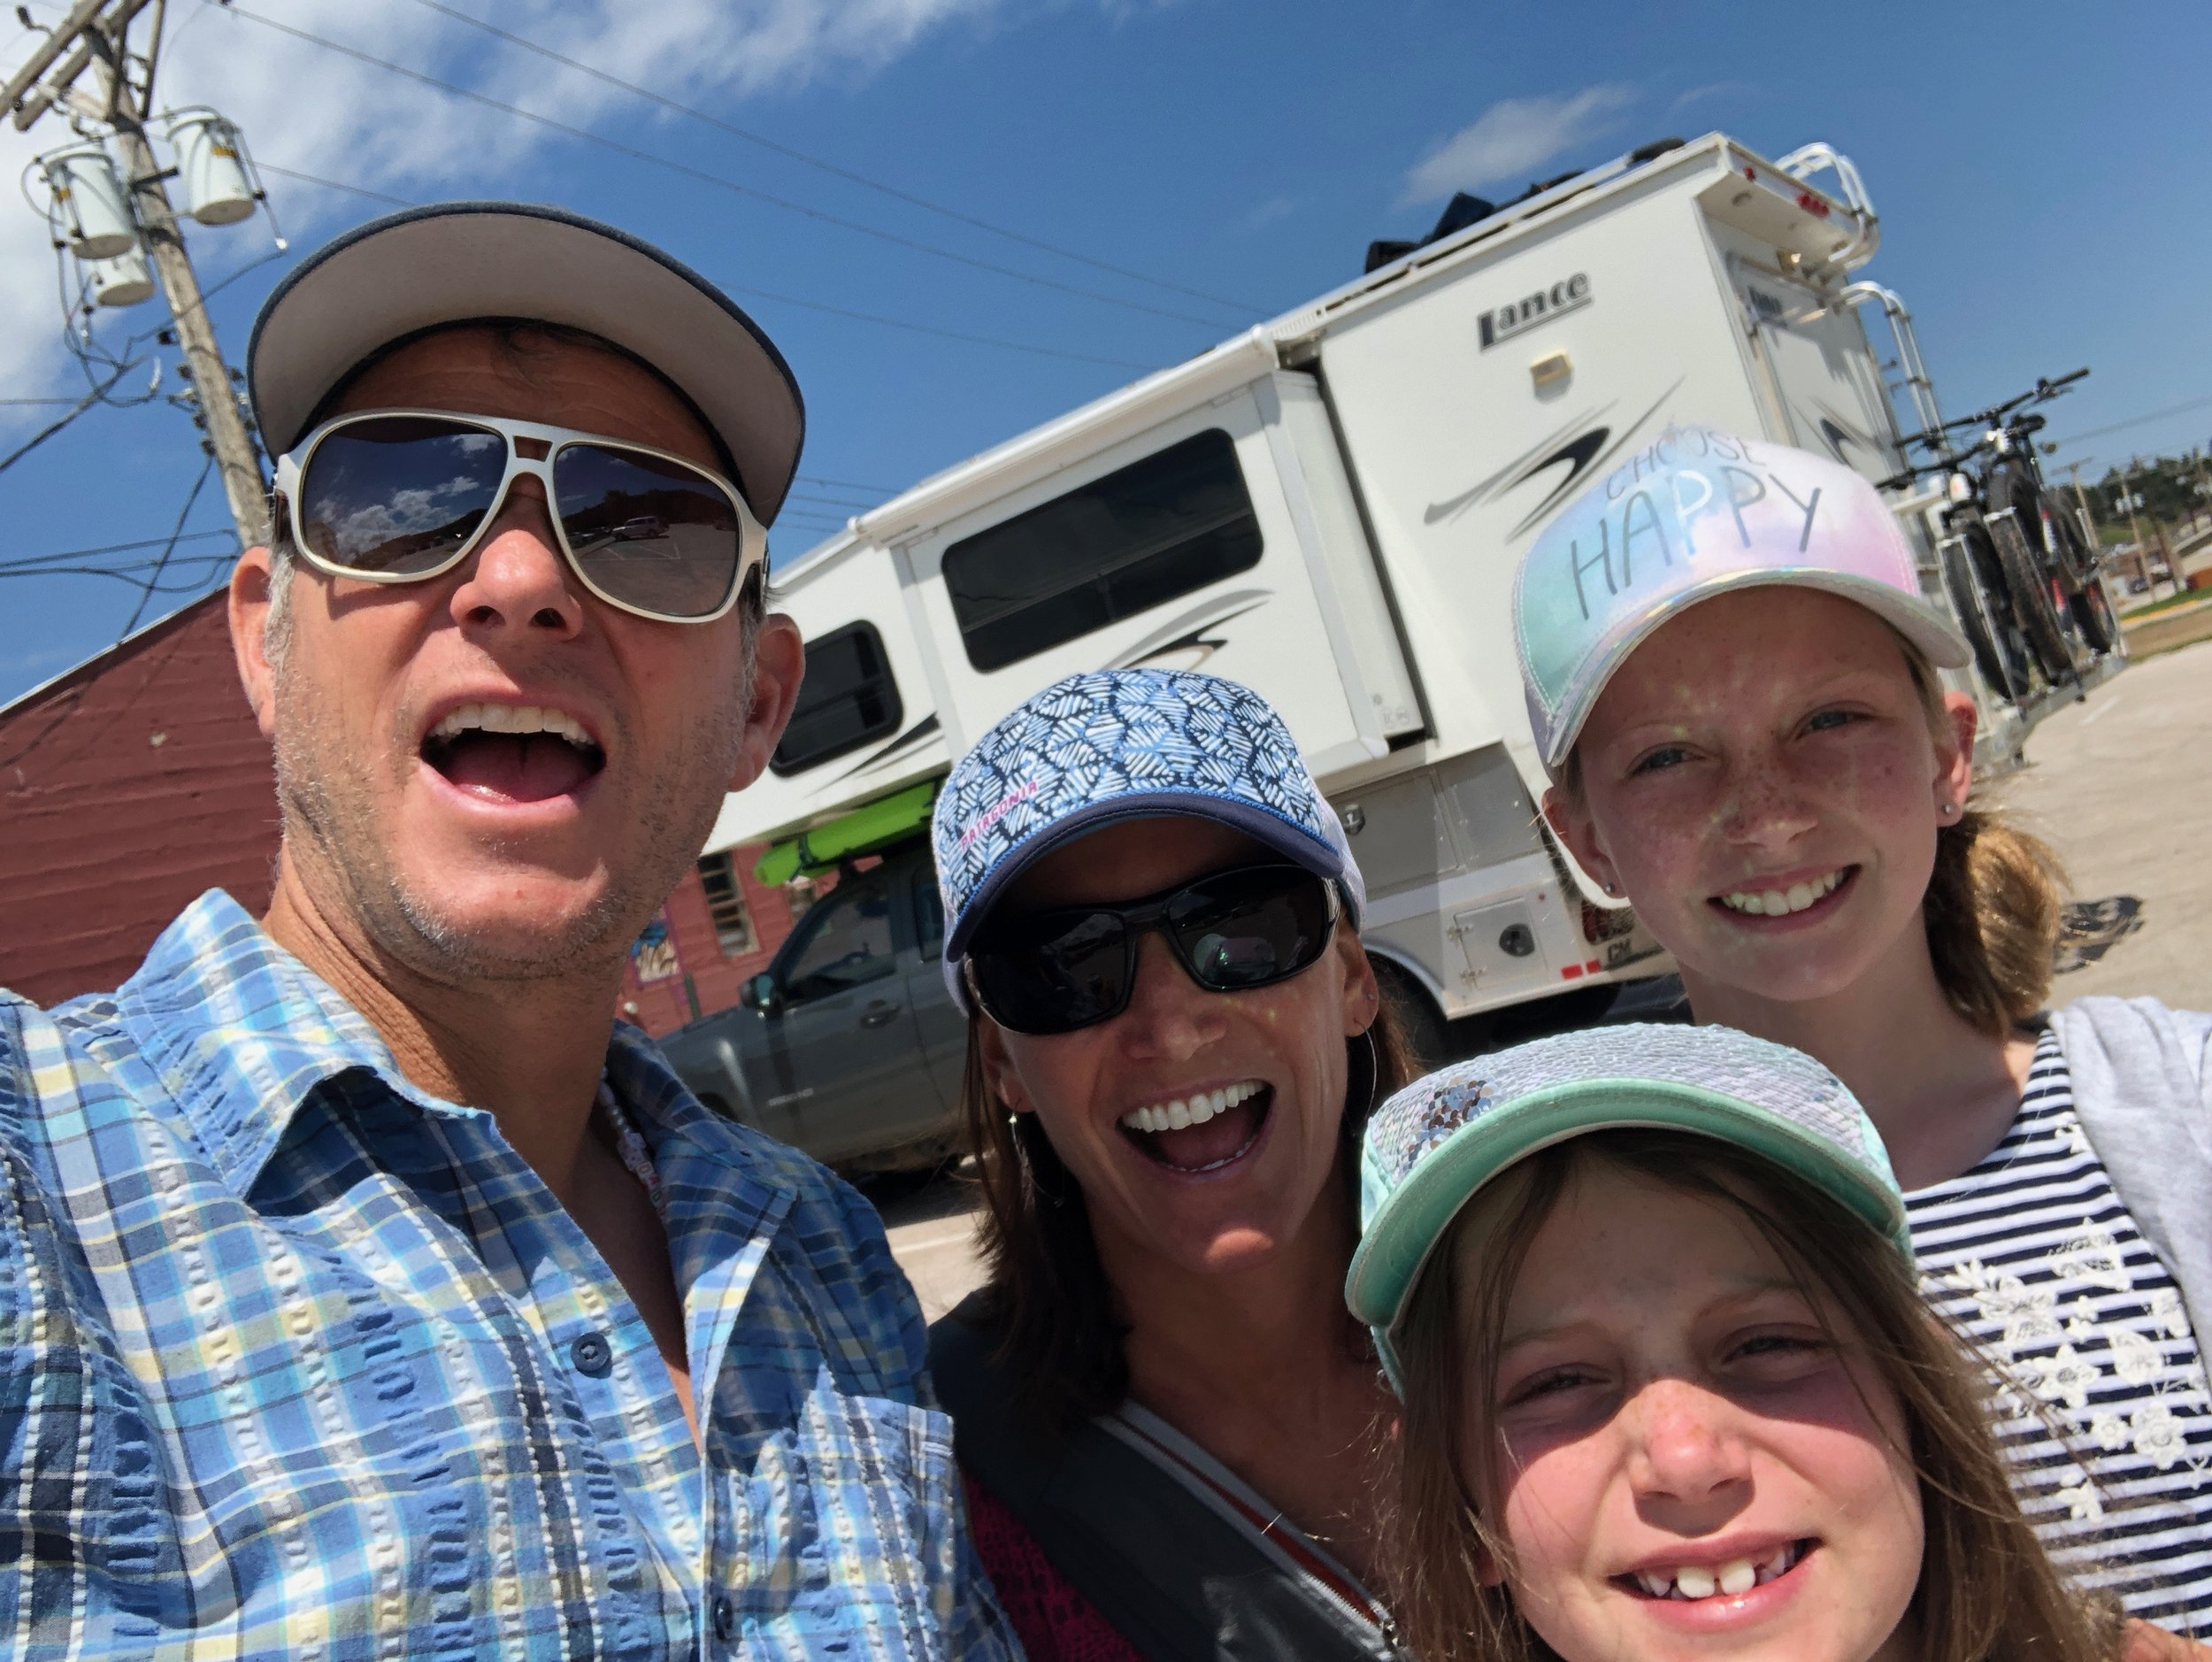 This is us in Custer, SD (after we got the girls out of their pajamas) getting ready to celebrate our family accomplishment and the 4th of July!!